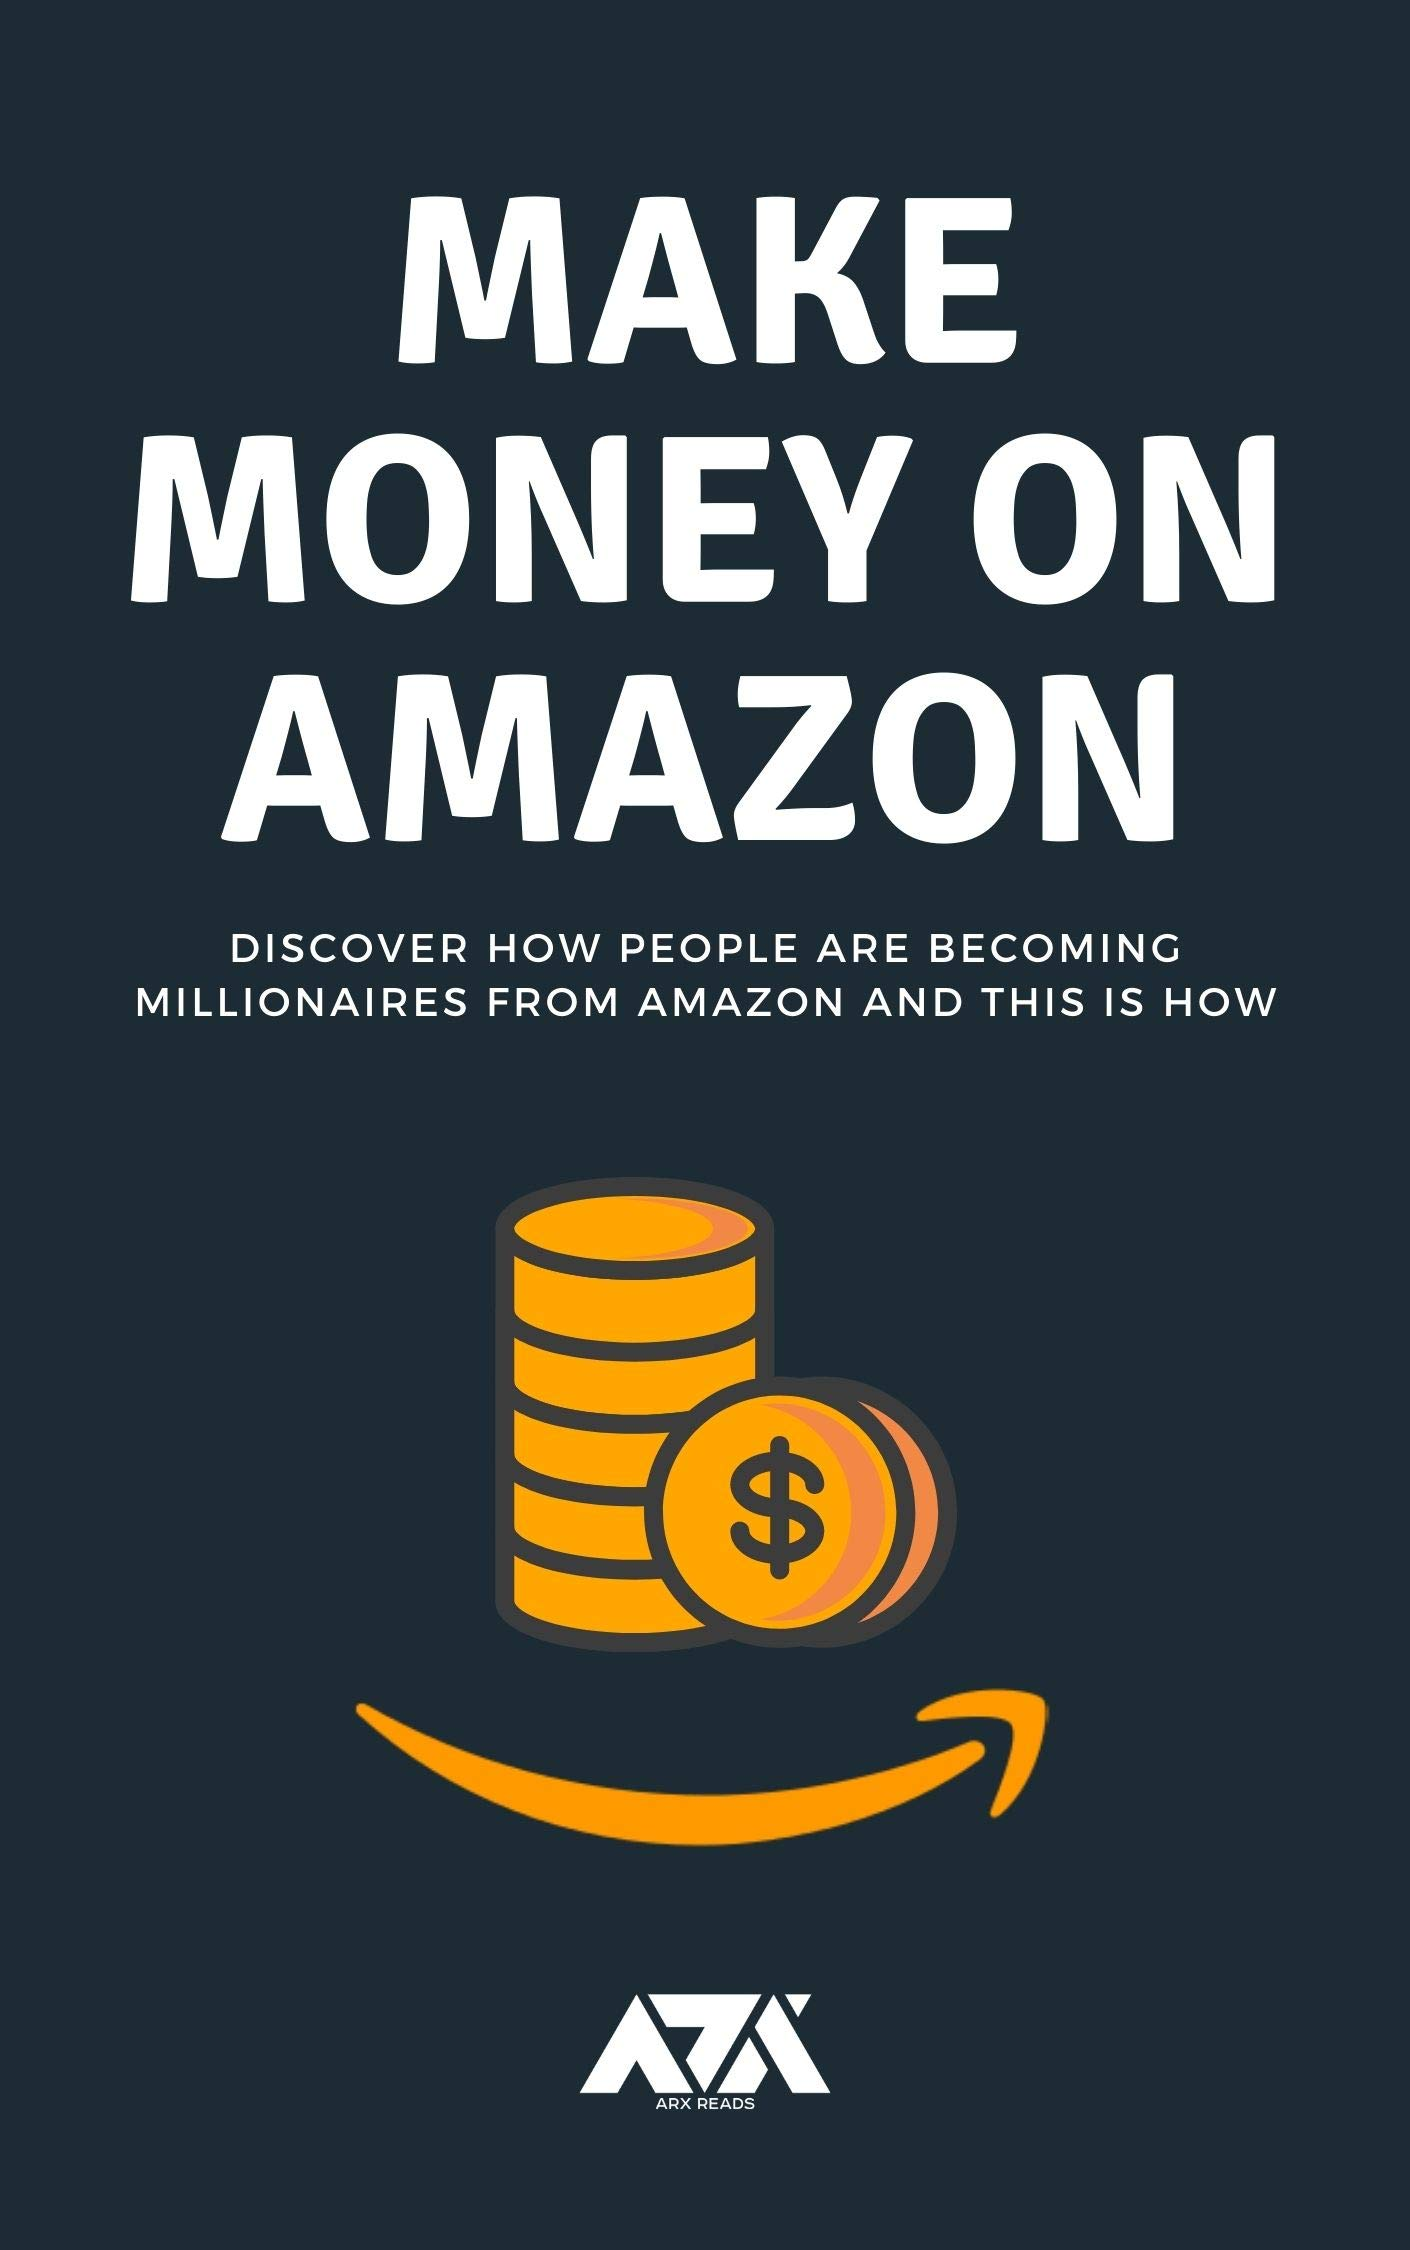 Make Money on Amazon: Discover How People Are Becoming Millionaires From Amazon and This Is How